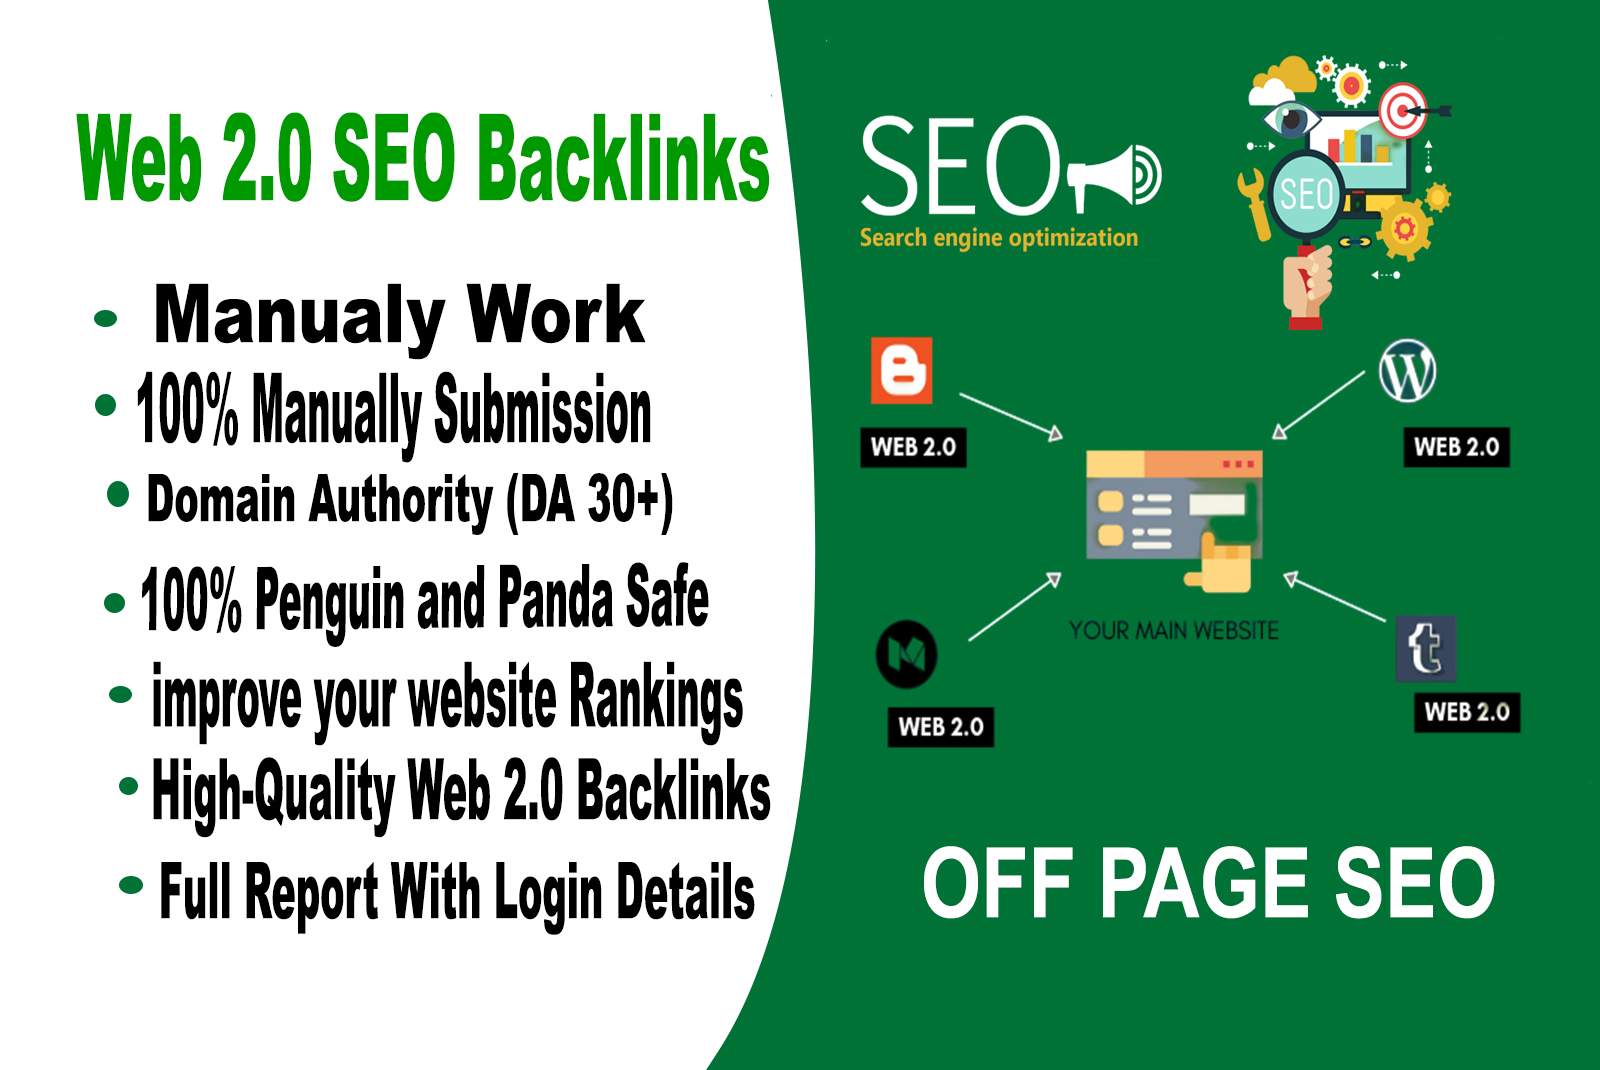 I will manually create HQ super web 2.0 Backlinks contextual links